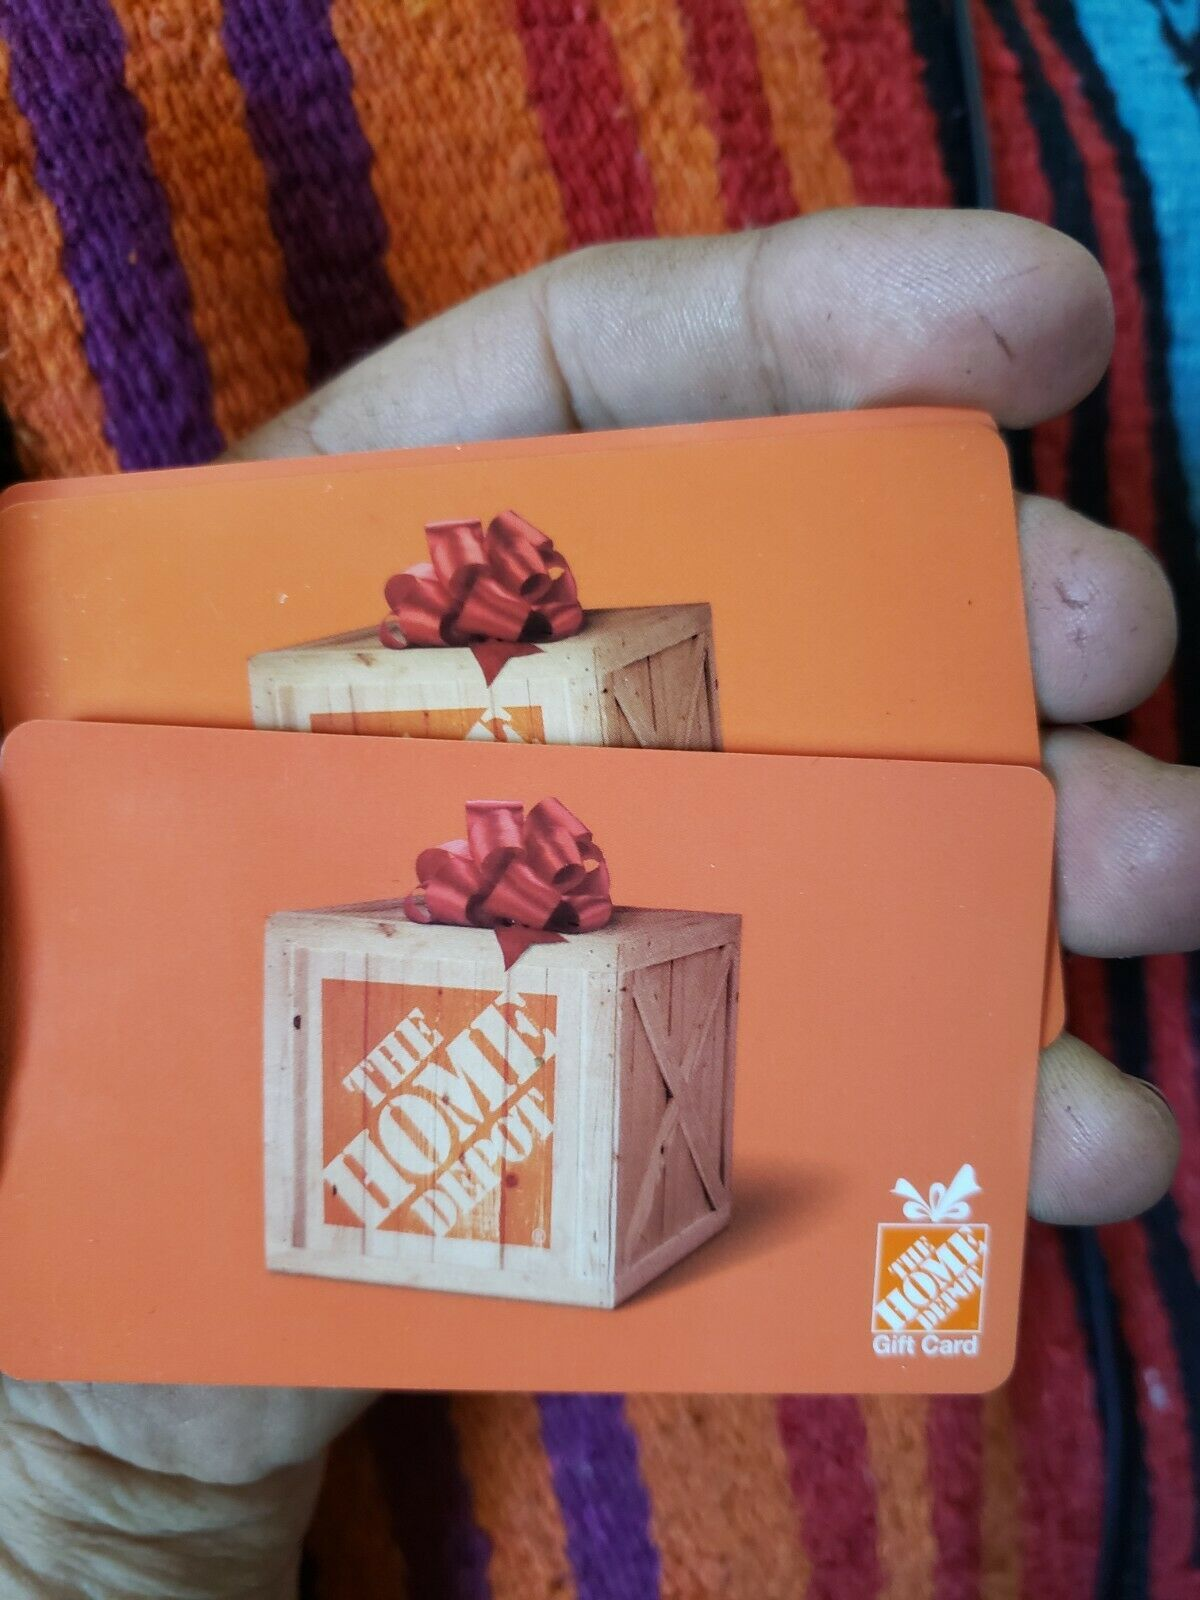 50 Home Depot Gift Card - Fast Shipping 2- 25 Cards  - $50.00